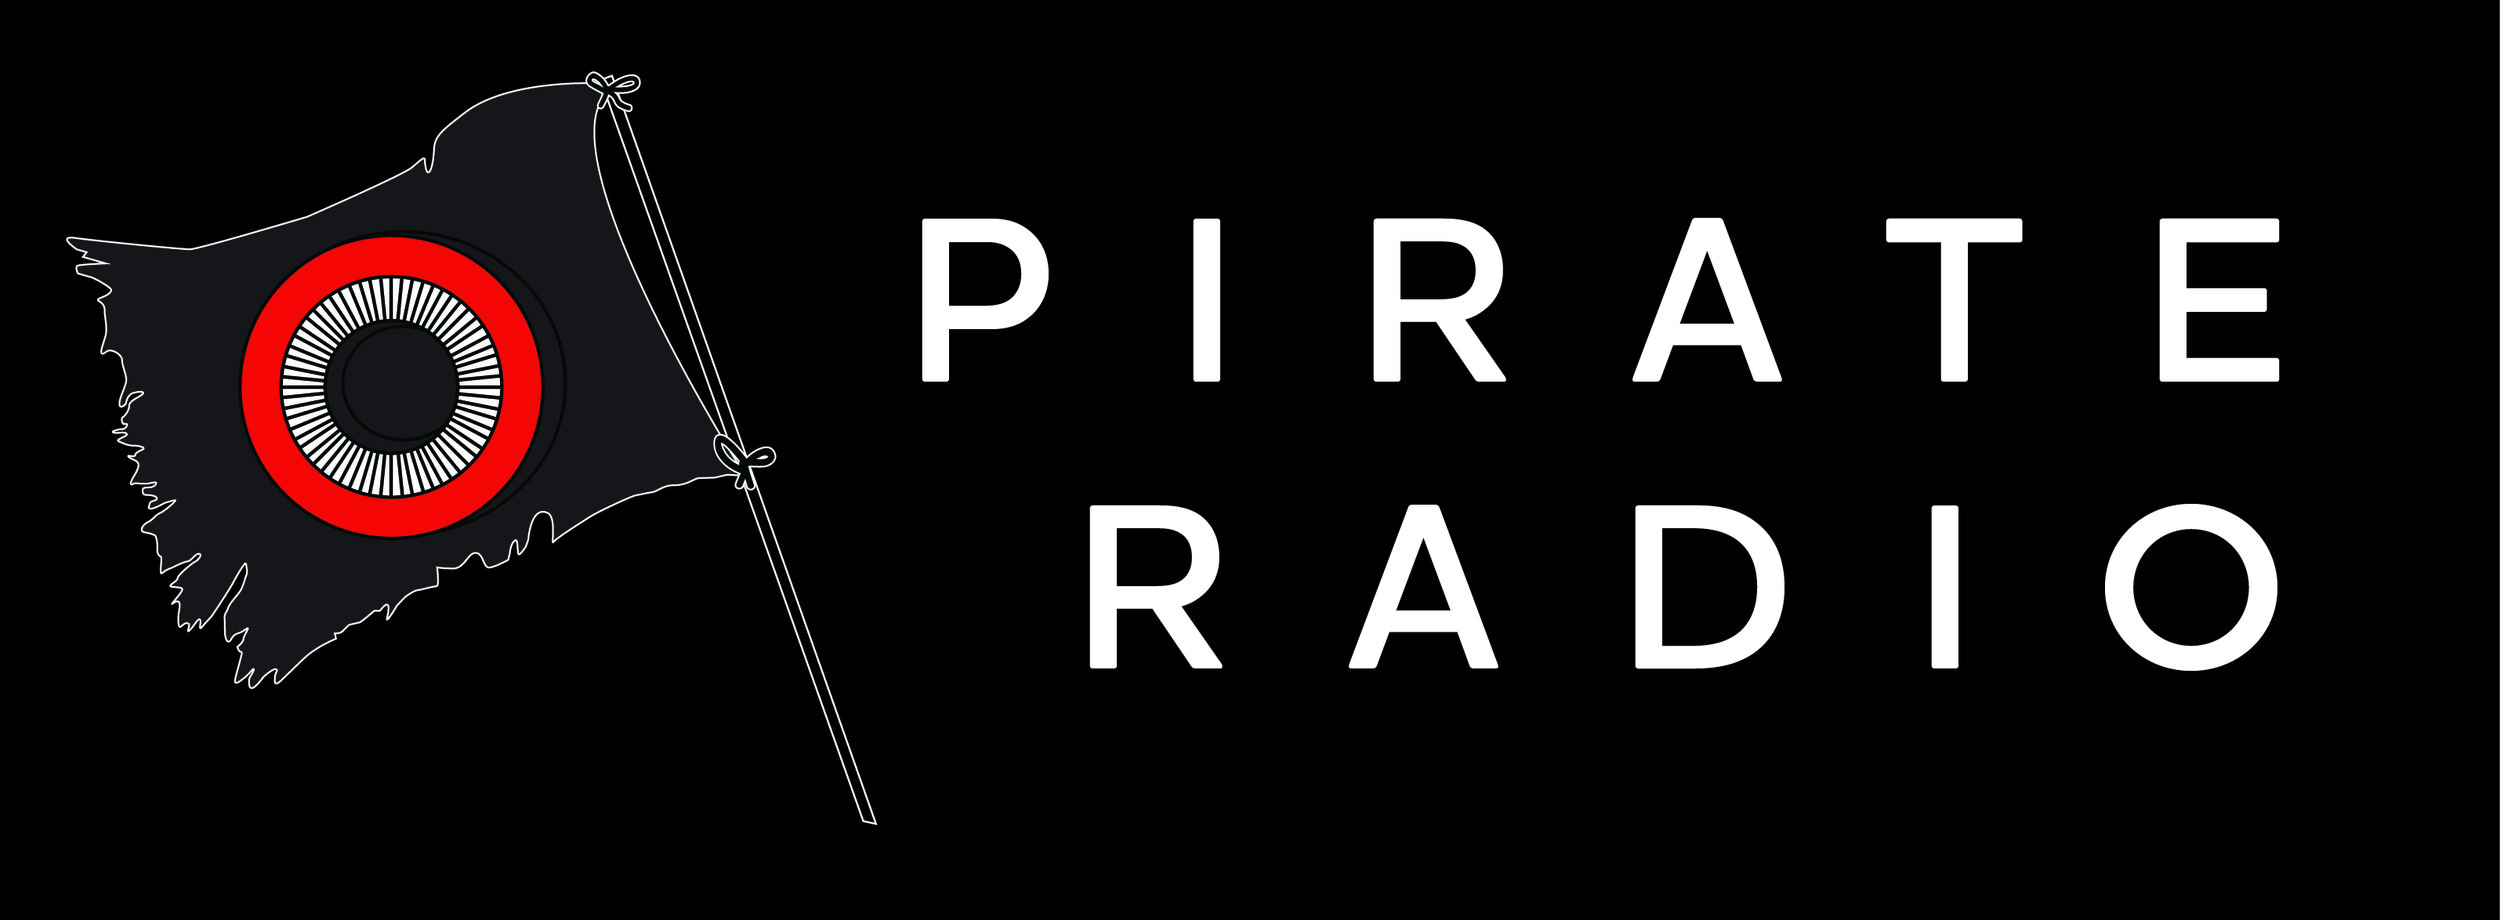 Rag Flag Pirate Radio text black background.jpg